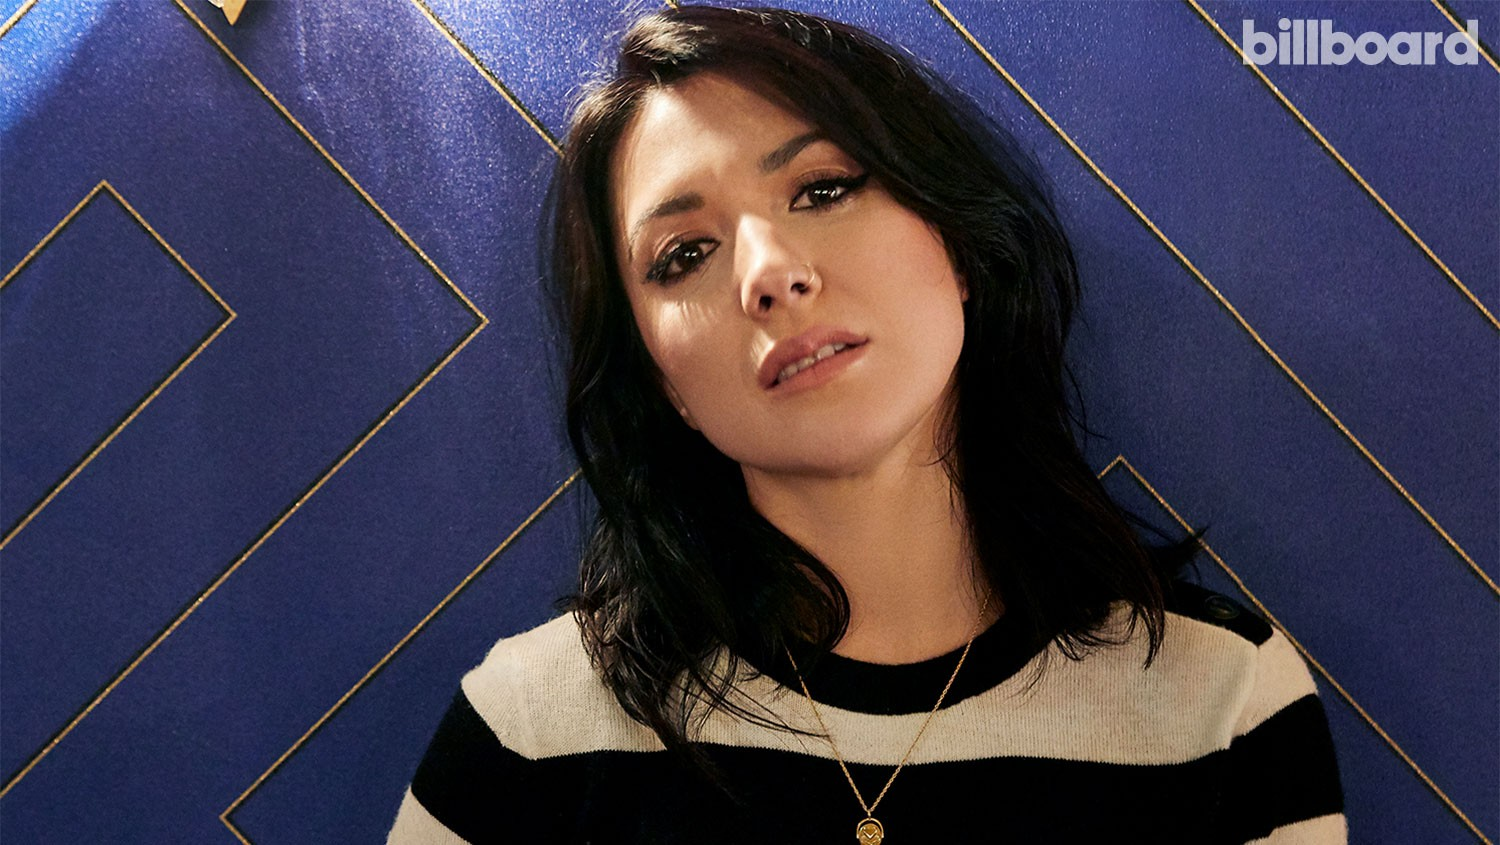 Michelle Branch, photographed March 7 at Vandal in New York.